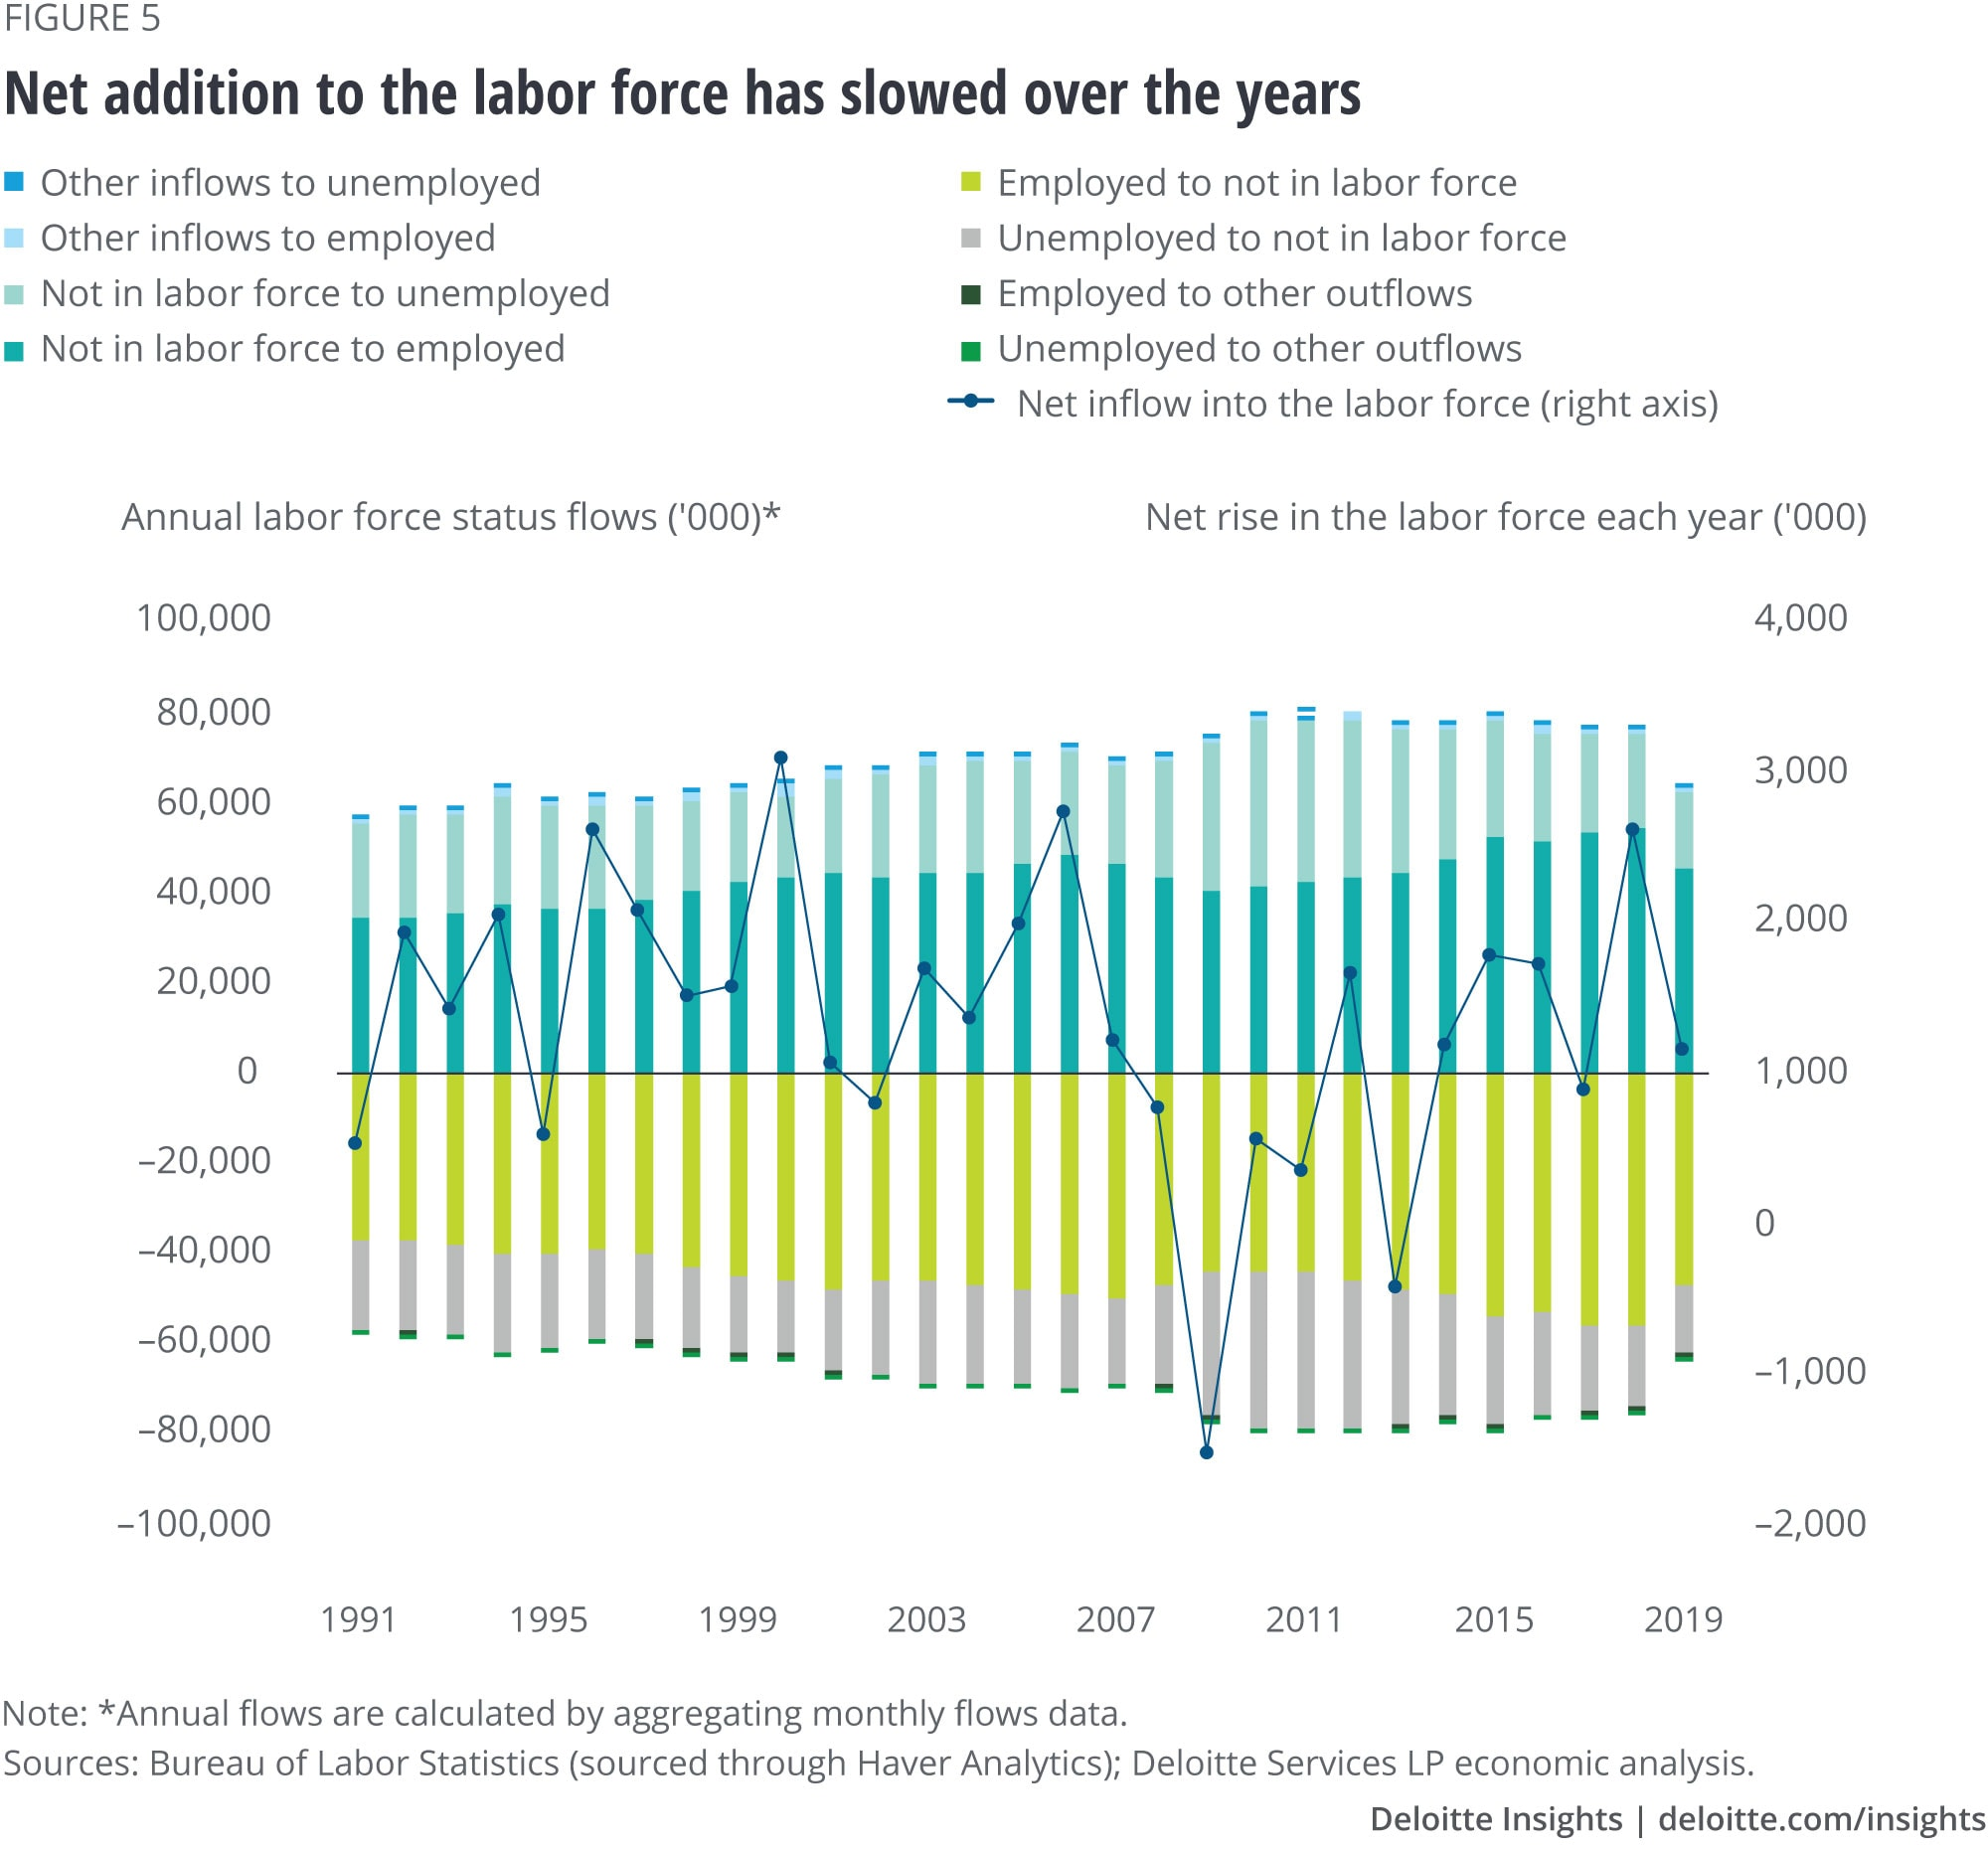 Net addition to the labor force has slowed over the years